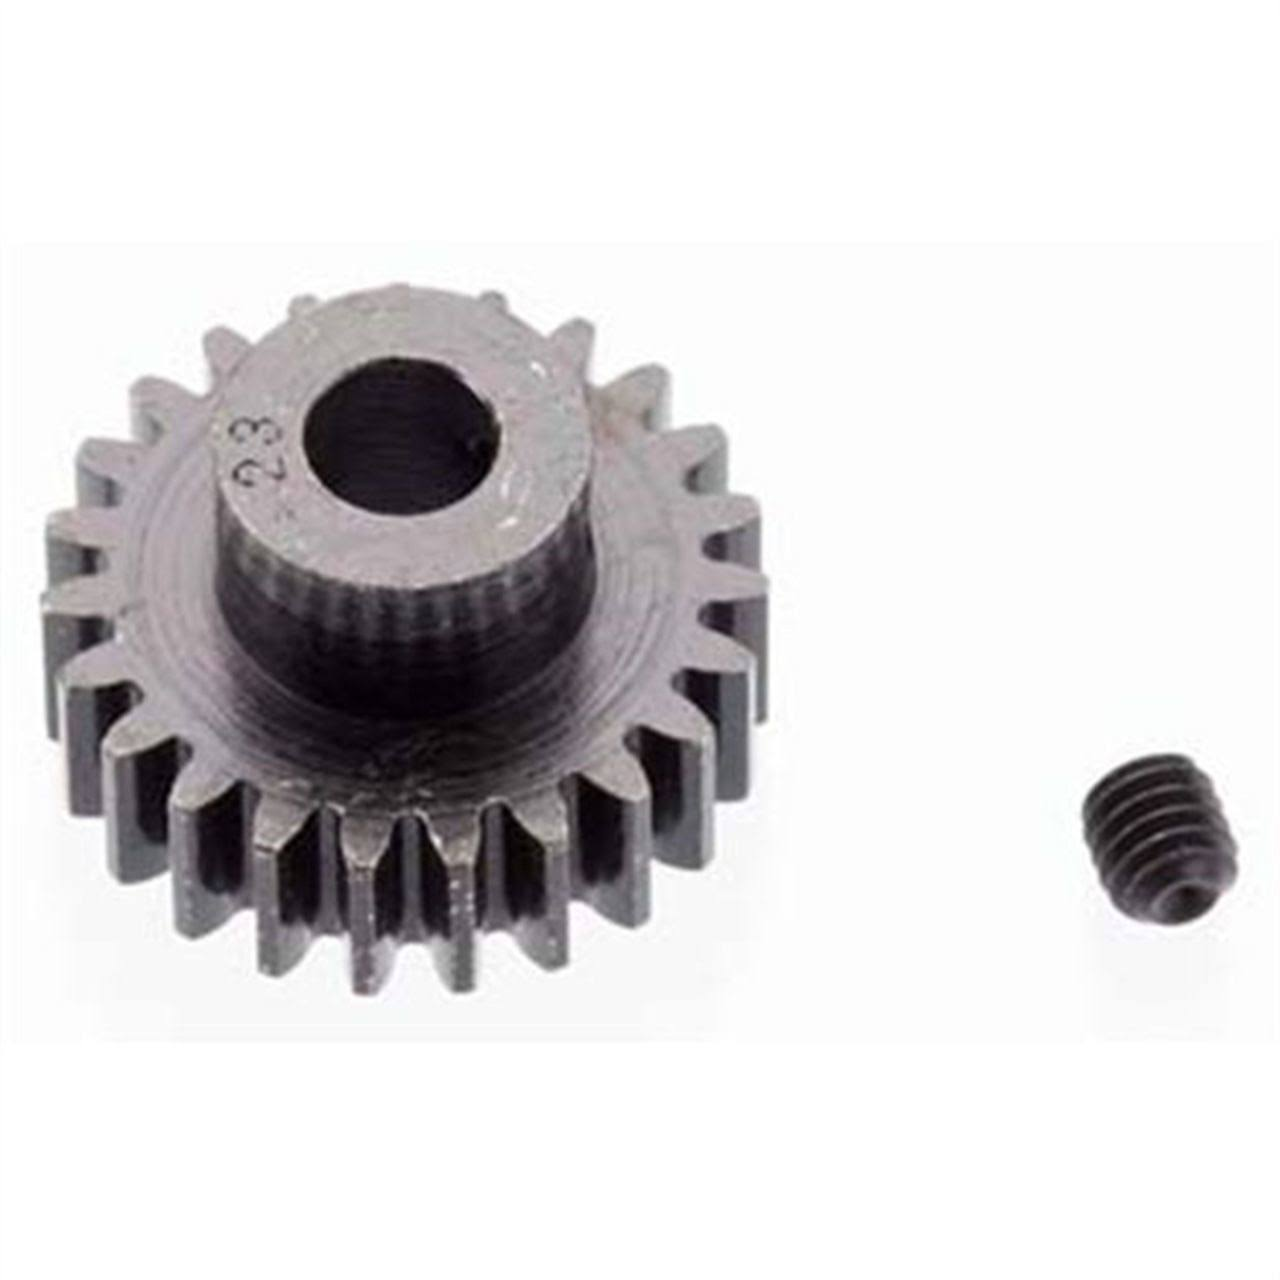 Robinson Racing RRP8623 Extra Hard Blackened Steel Pinion - 23t